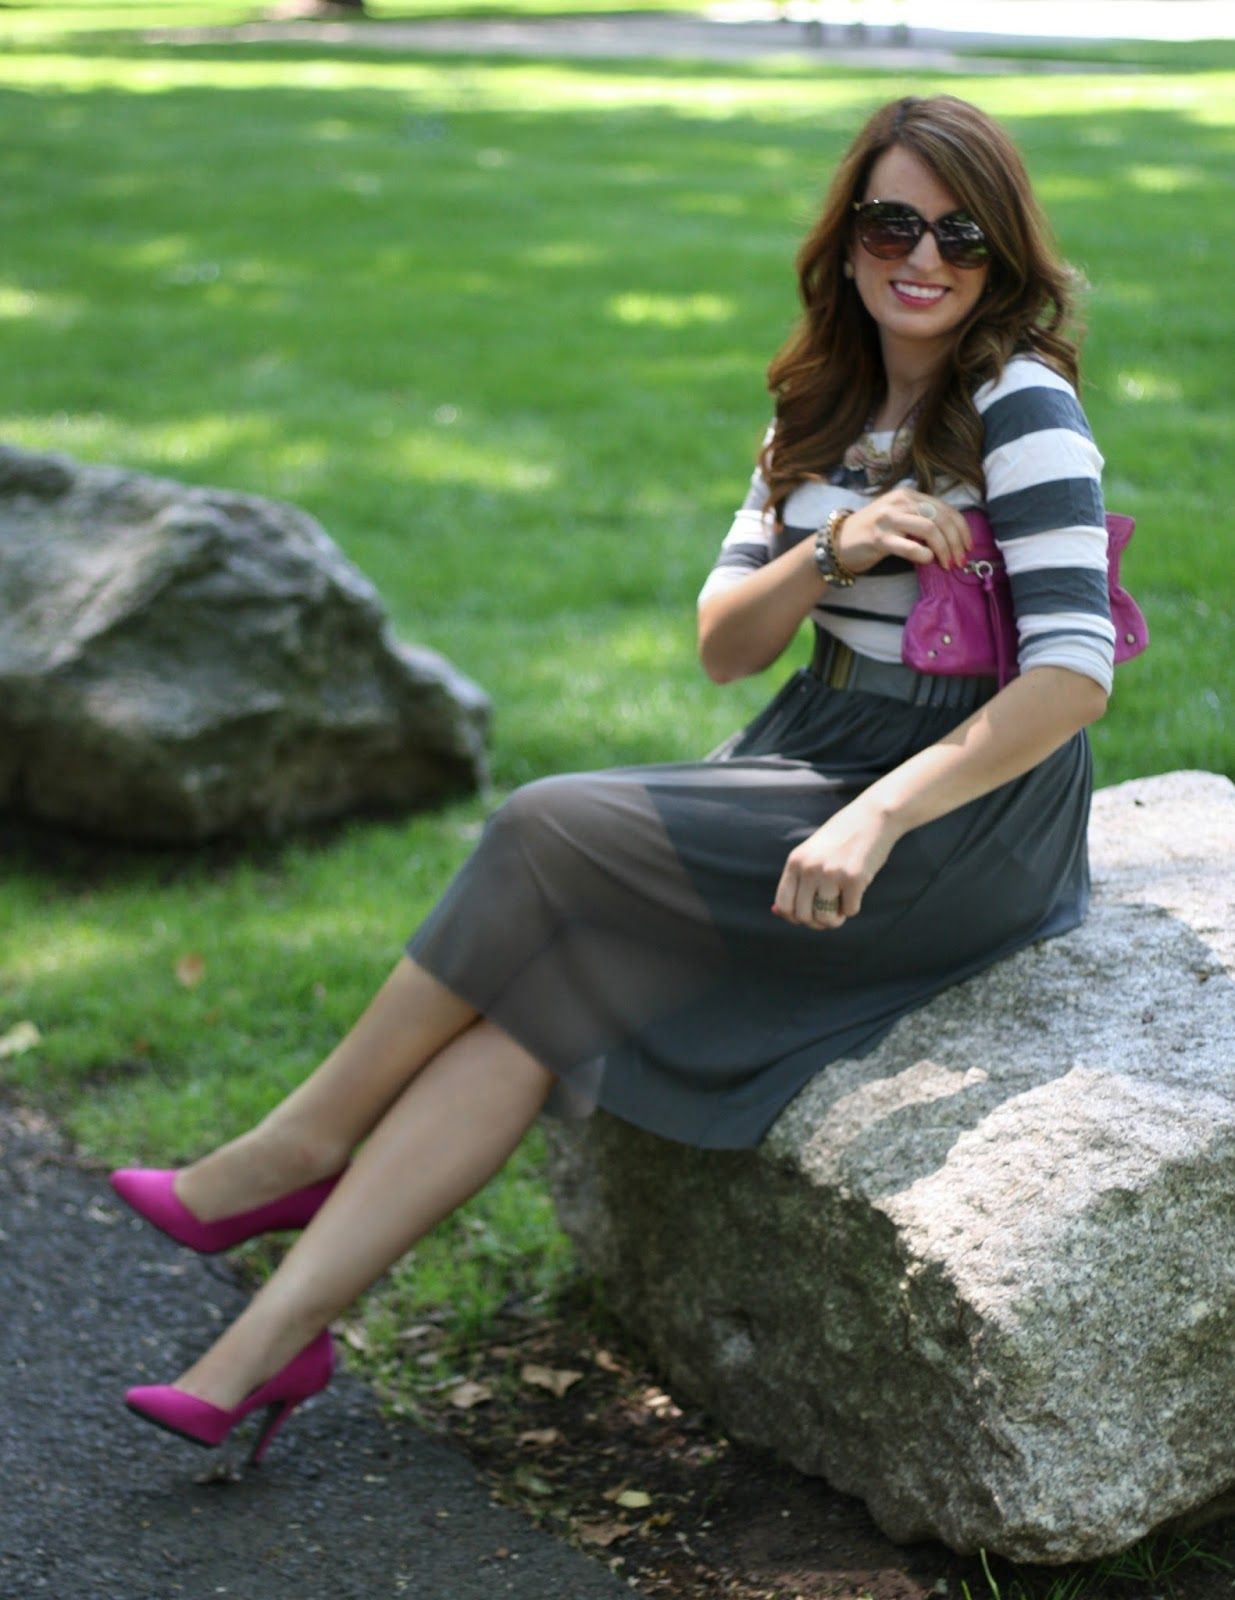 Tulle skirt, striped top, pink accessories